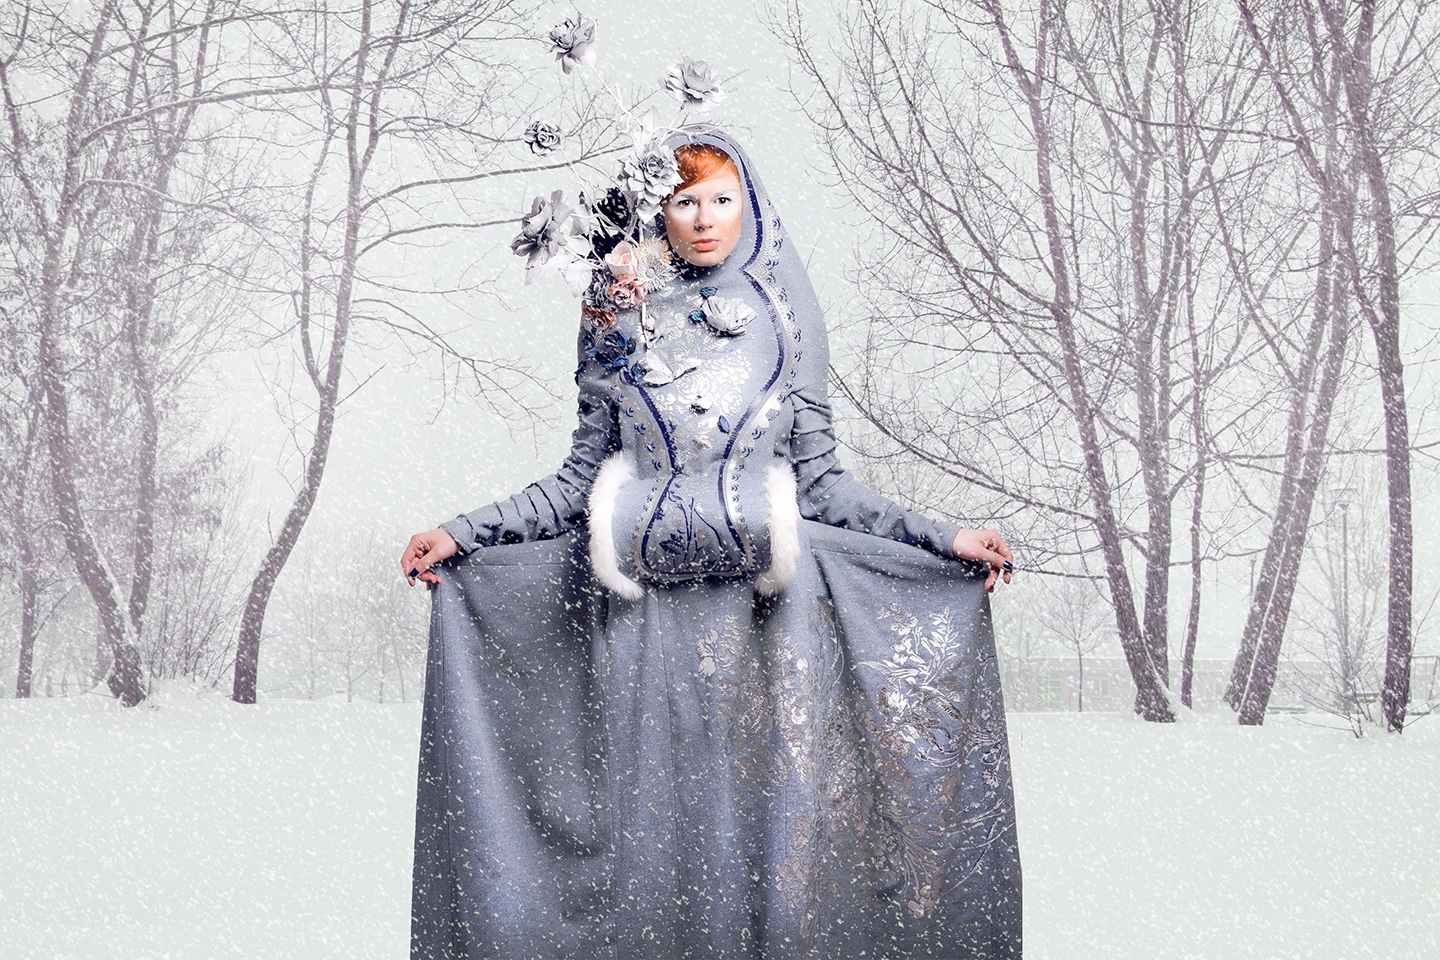 Readhead girl in fairytale costume in winter snow